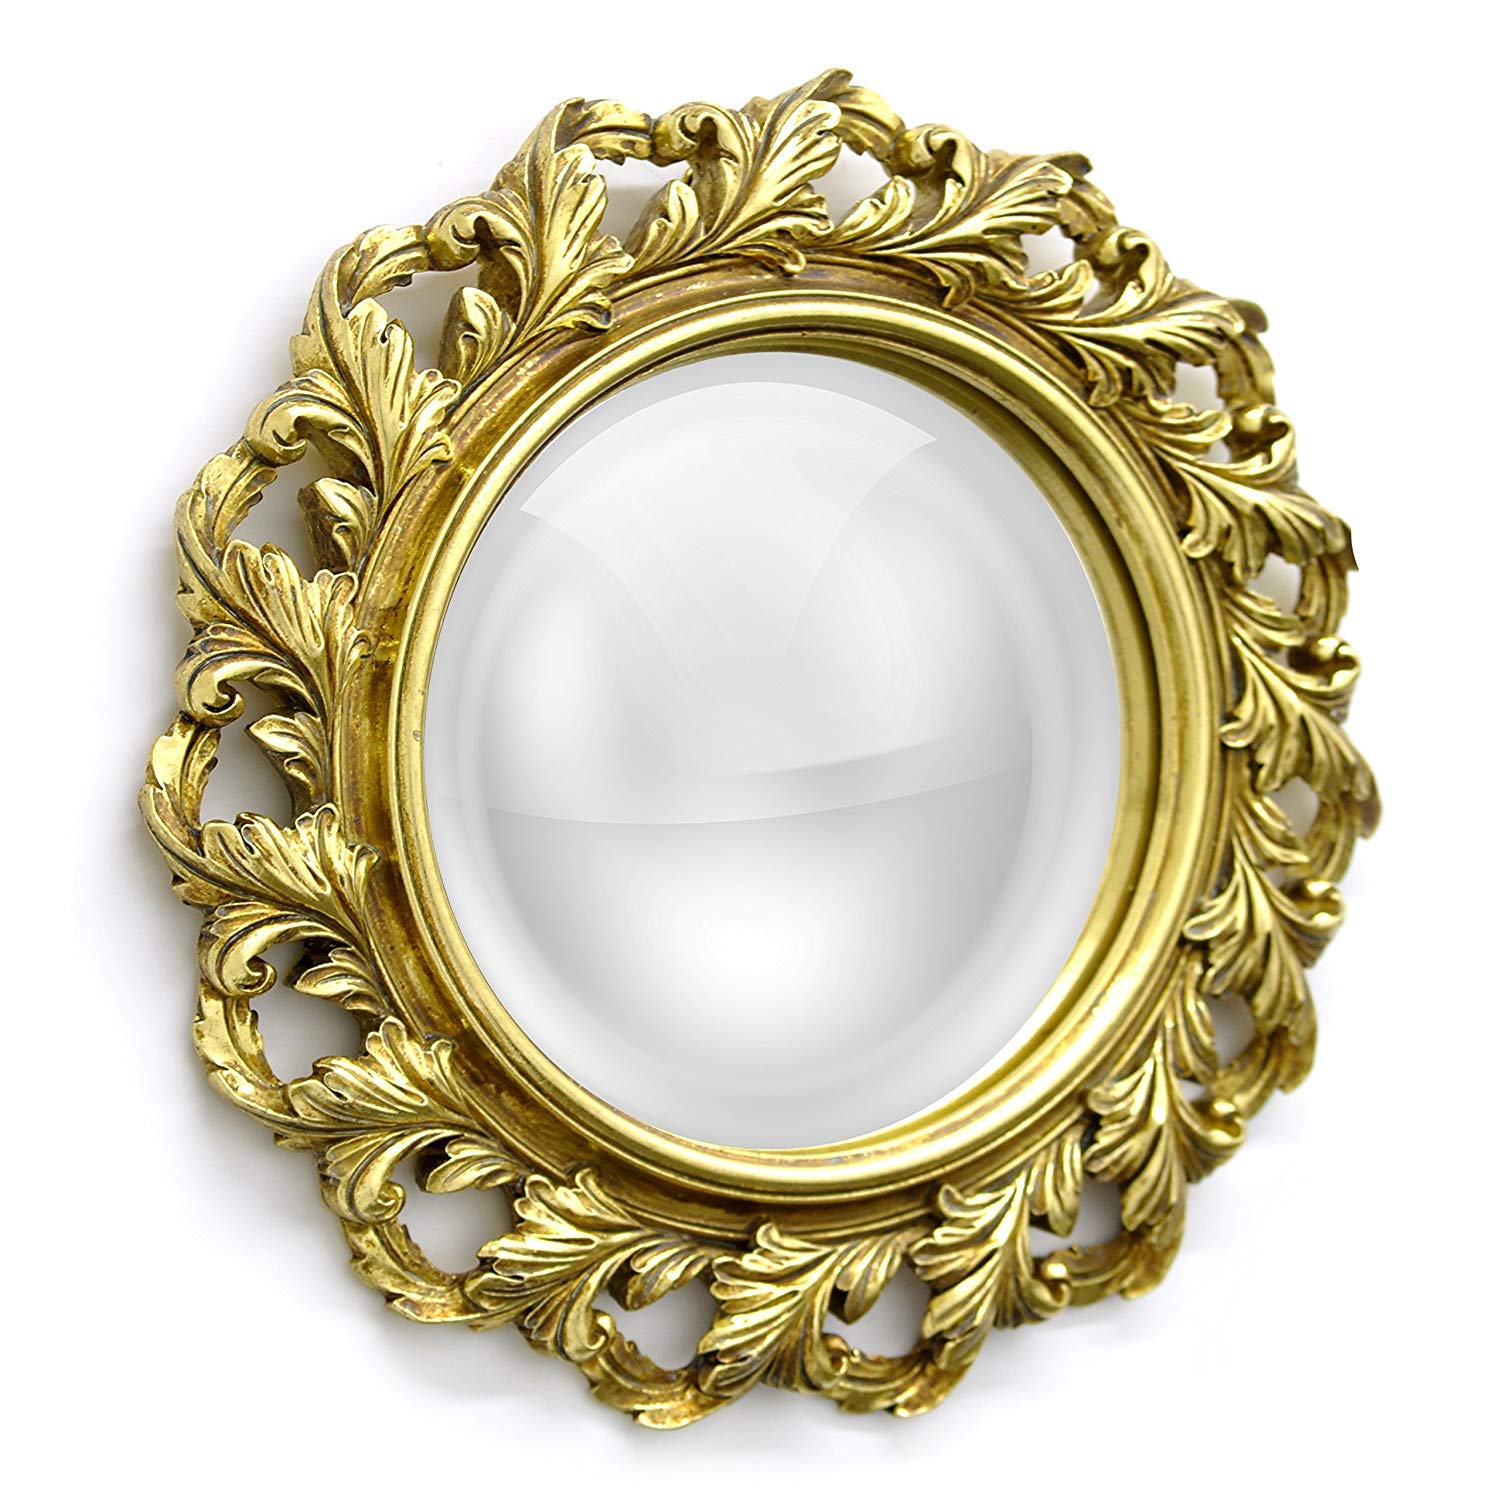 Amazon.com: Better Homes and Gardens Baroque Wall Mirror, Gold: Home ...